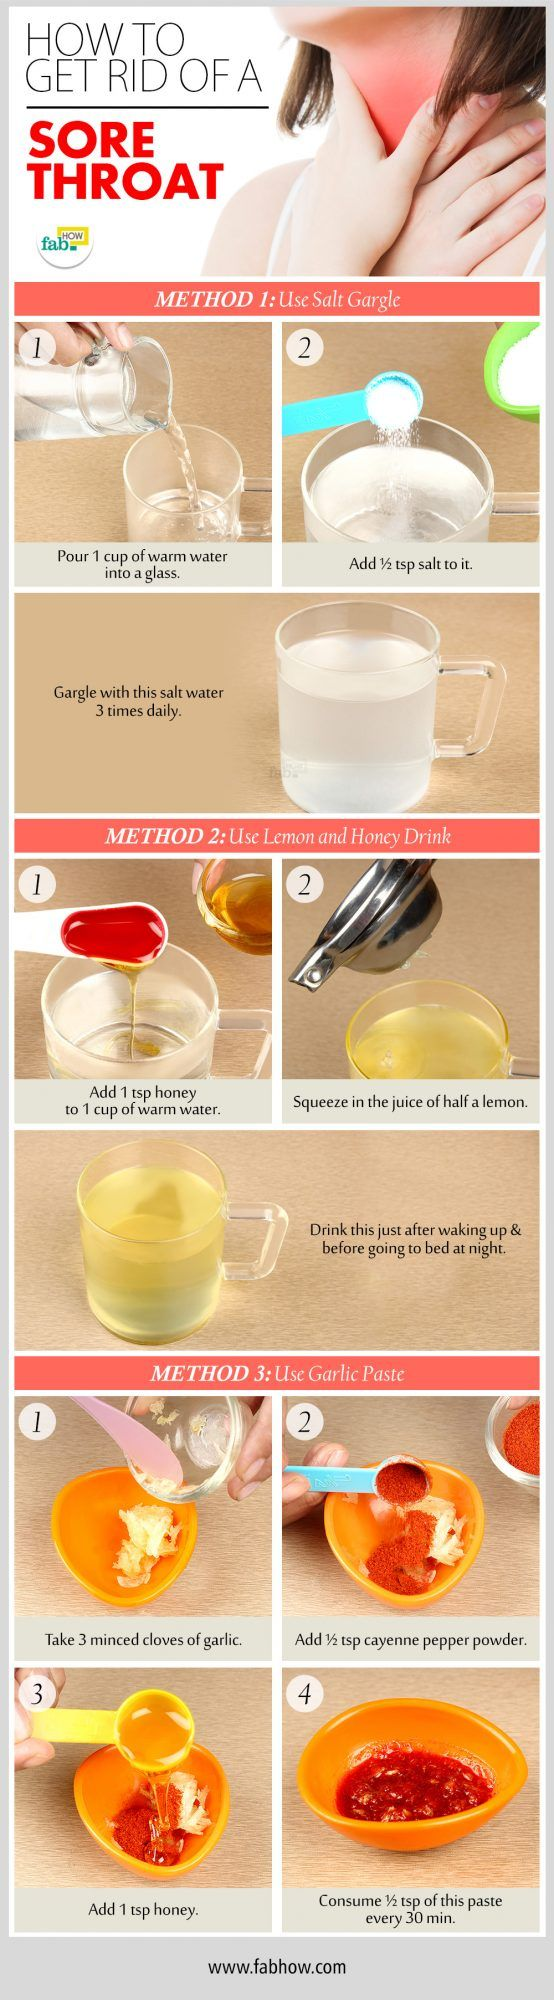 Home remedy to get rid of a sore throat fast and naturally home home remedy to get rid of a sore throat fast and naturally ccuart Choice Image